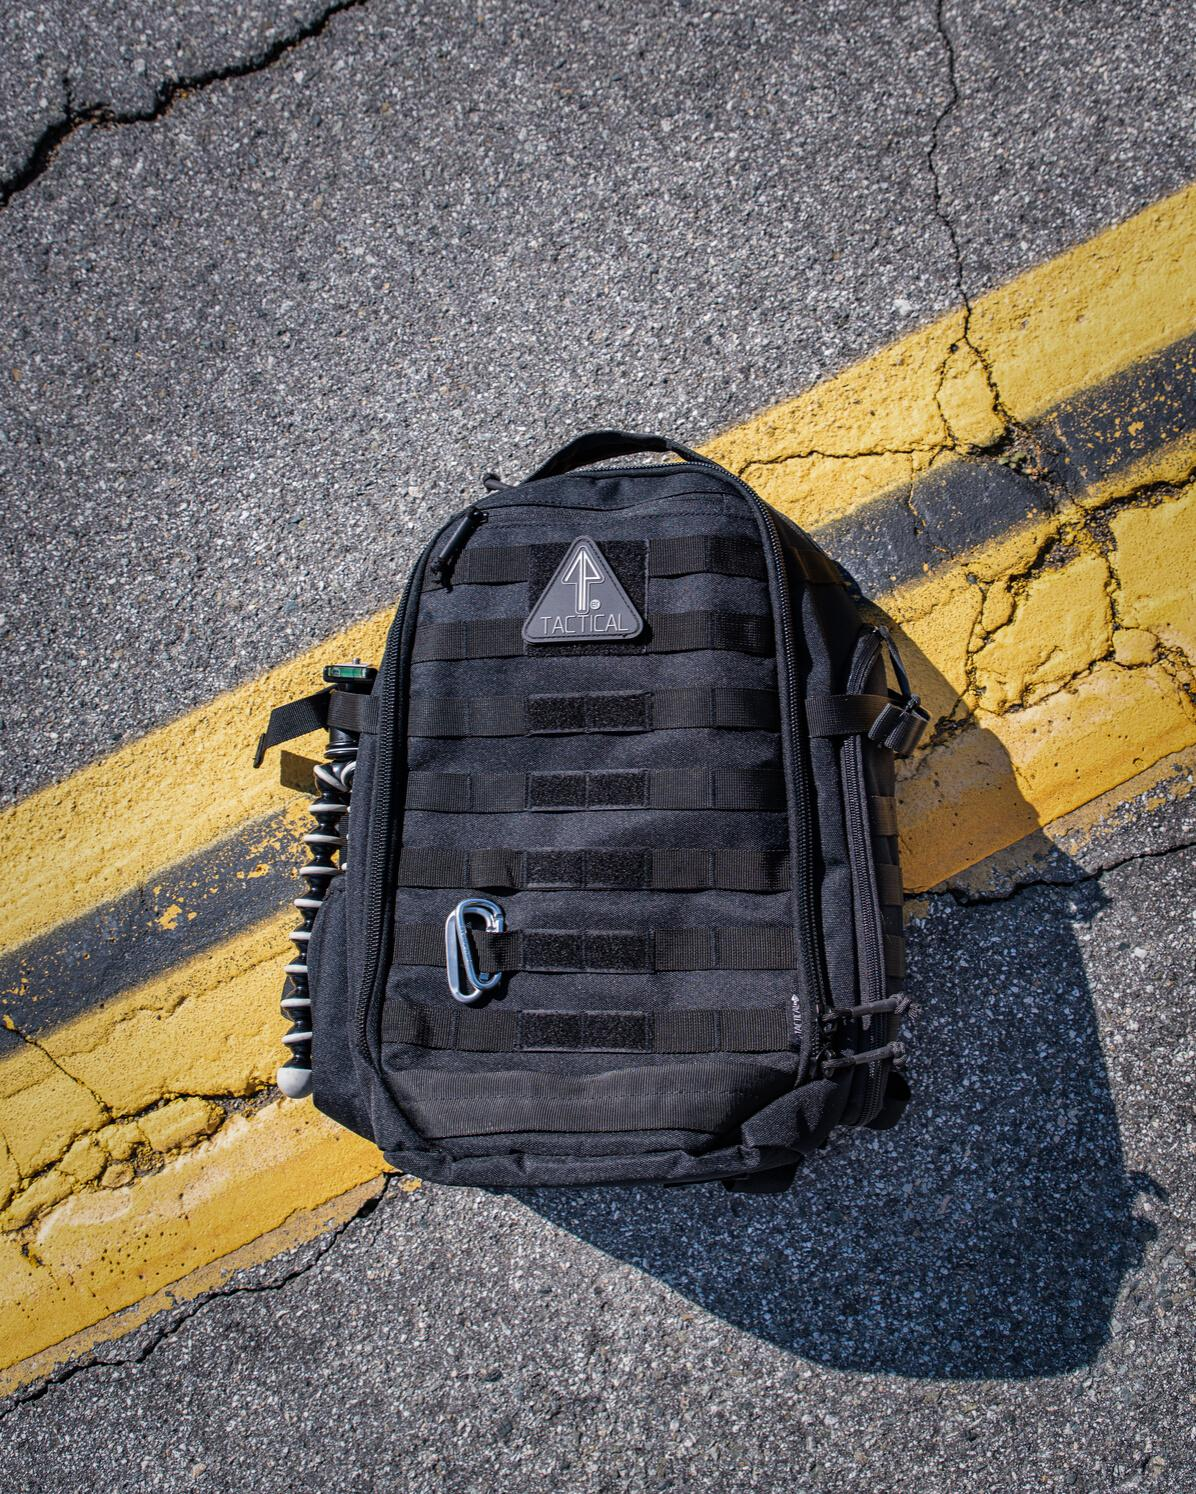 A 14er Tactical Backpack is laid on the street, well-cleaned and maintained.